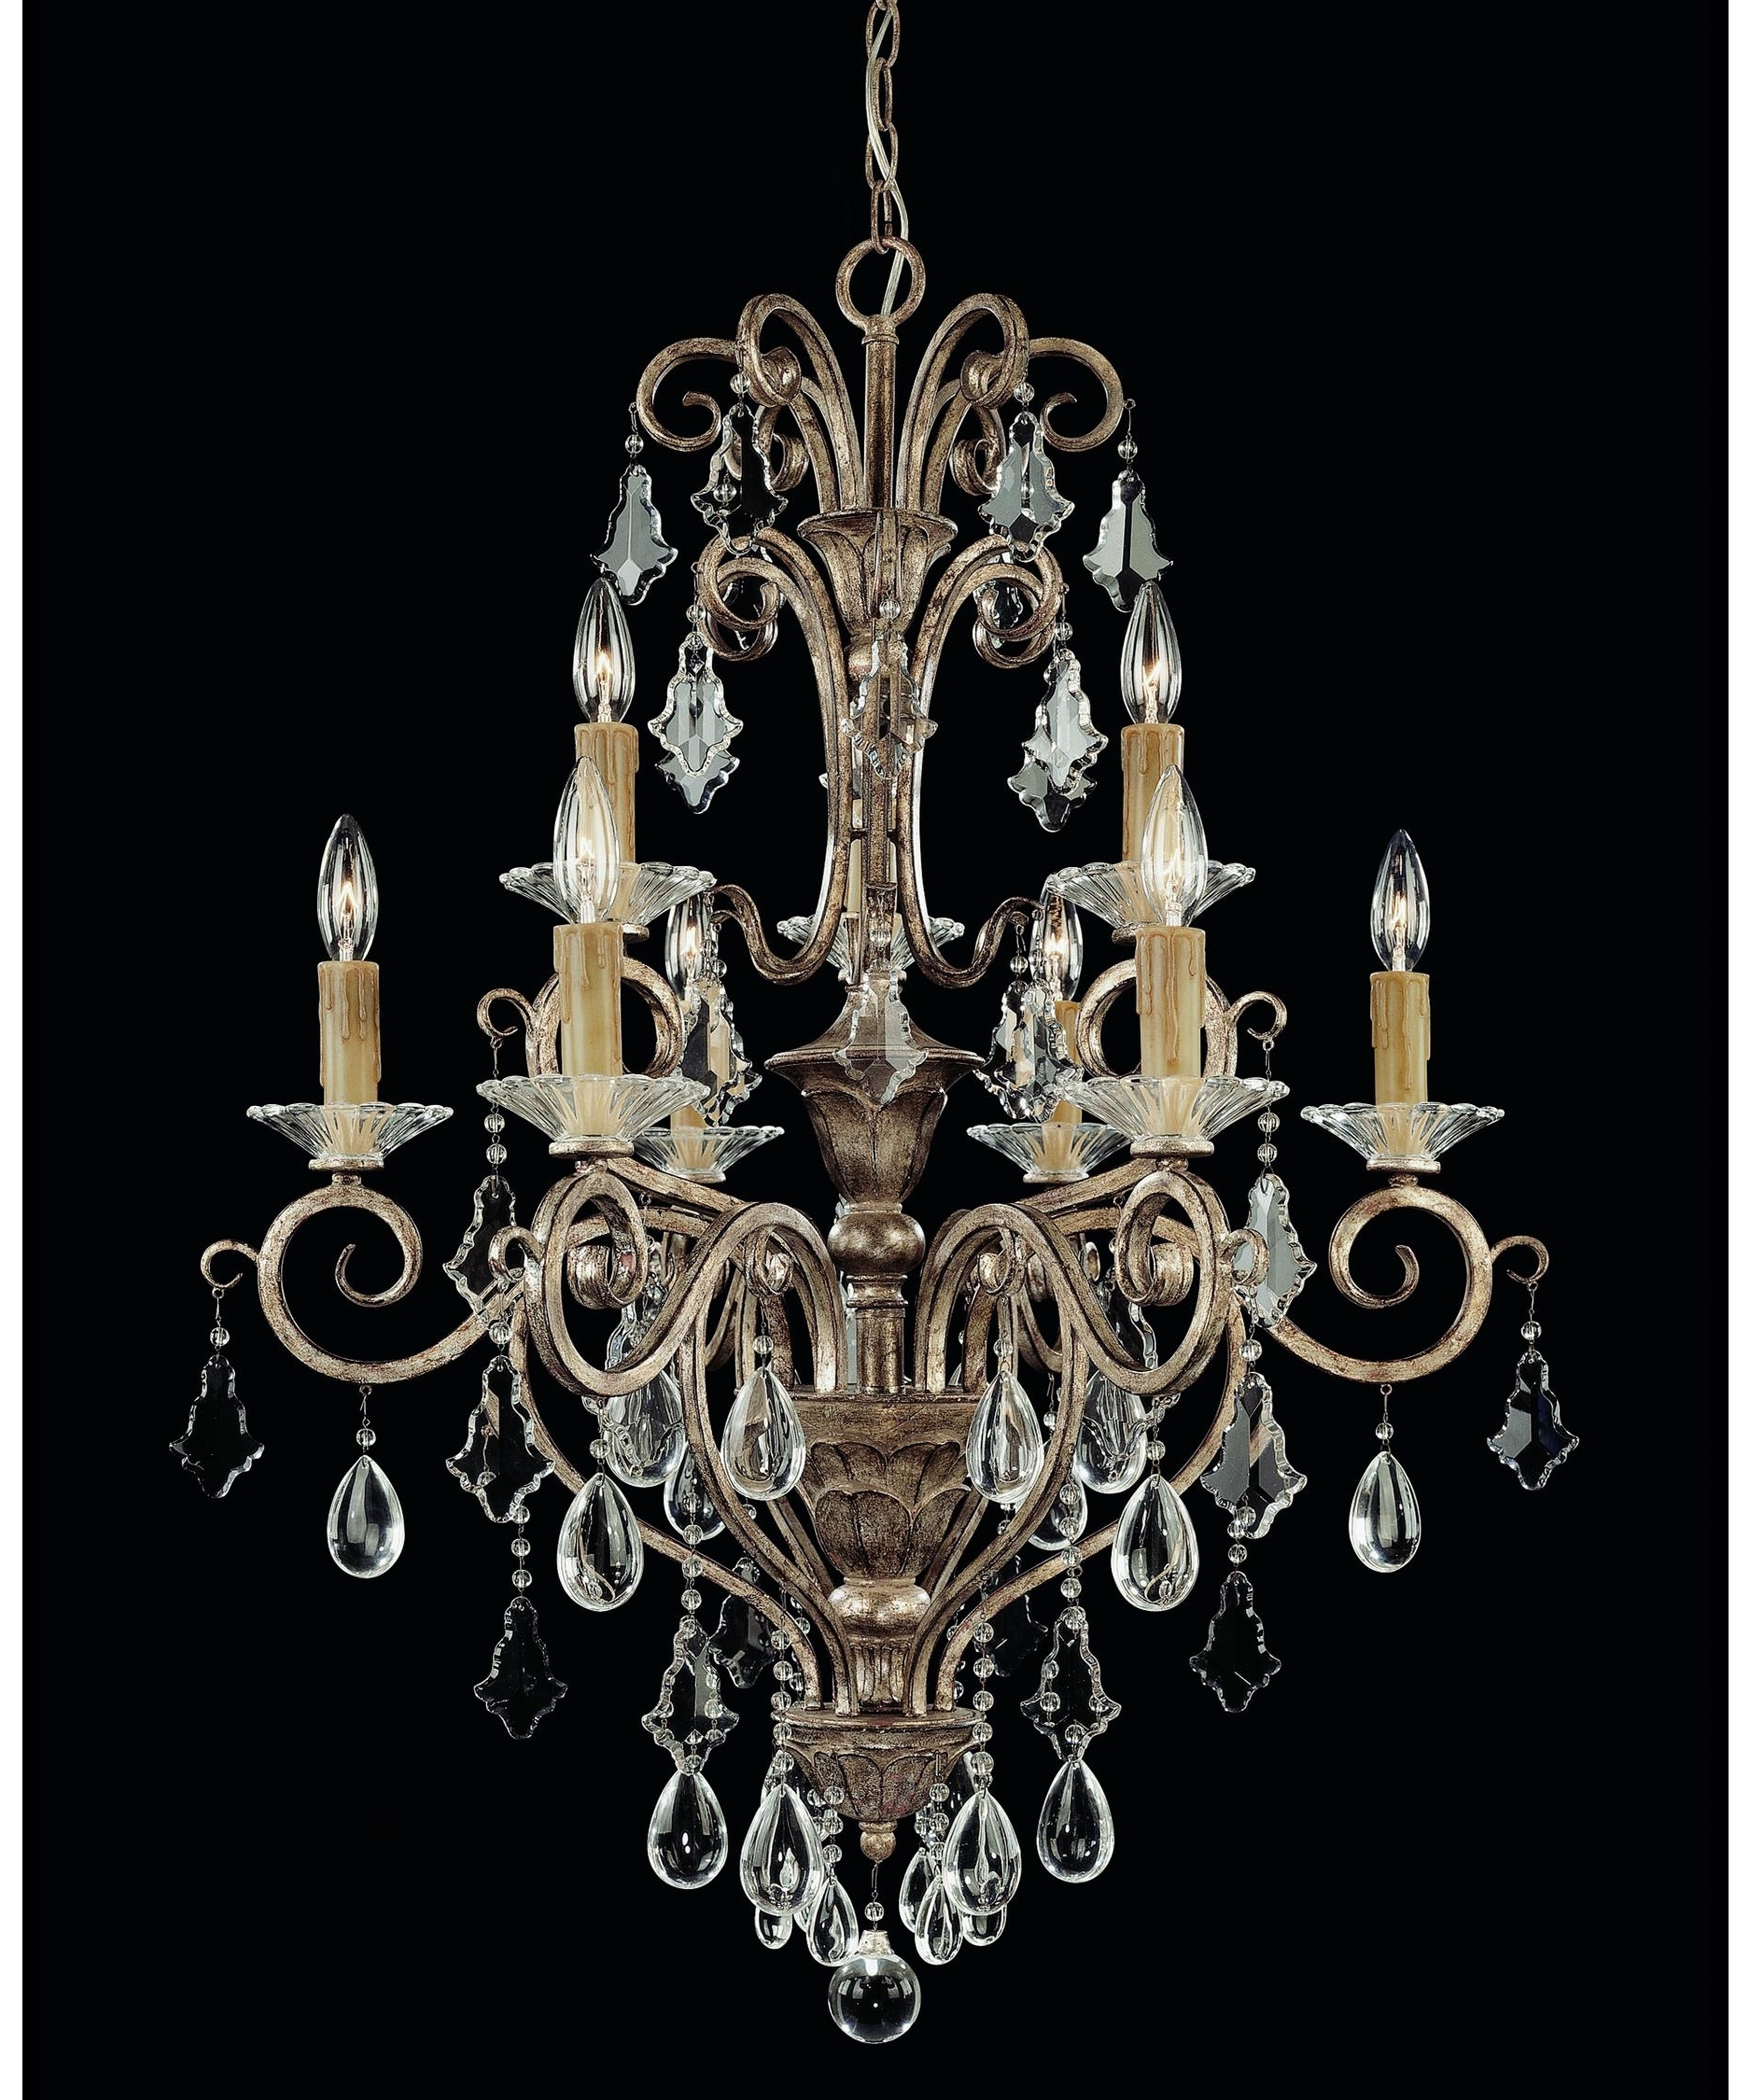 2017 Savoy House 1 1398 9 256 Antoinette 28 Inch Wide 9 Light Chandelier For Savoy House Chandeliers (View 9 of 15)